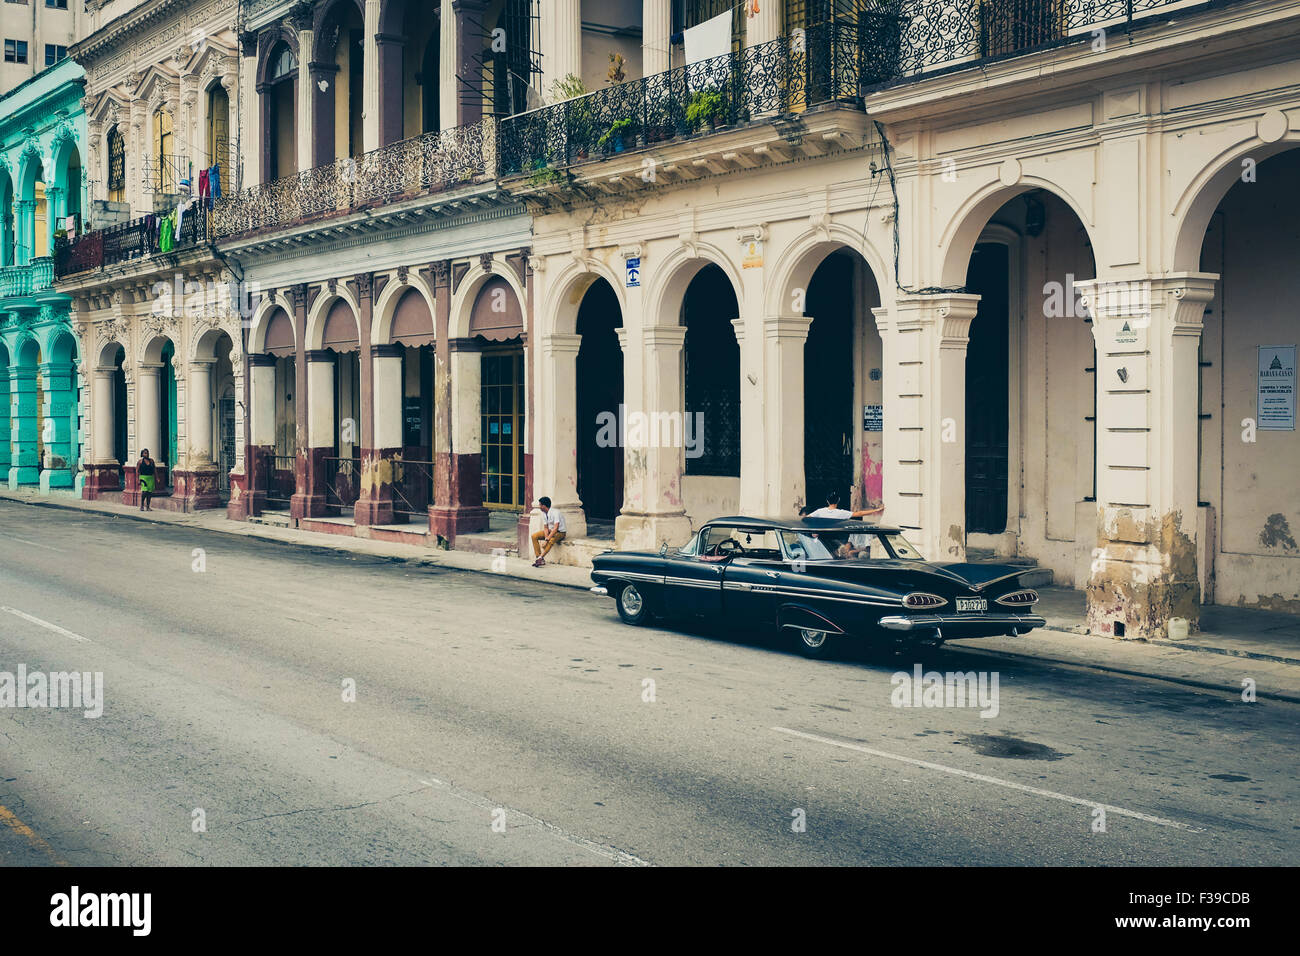 A vintage black Cuban car parked on The Prado in central Havana next to colonial buildings. Cuba. - Stock Image